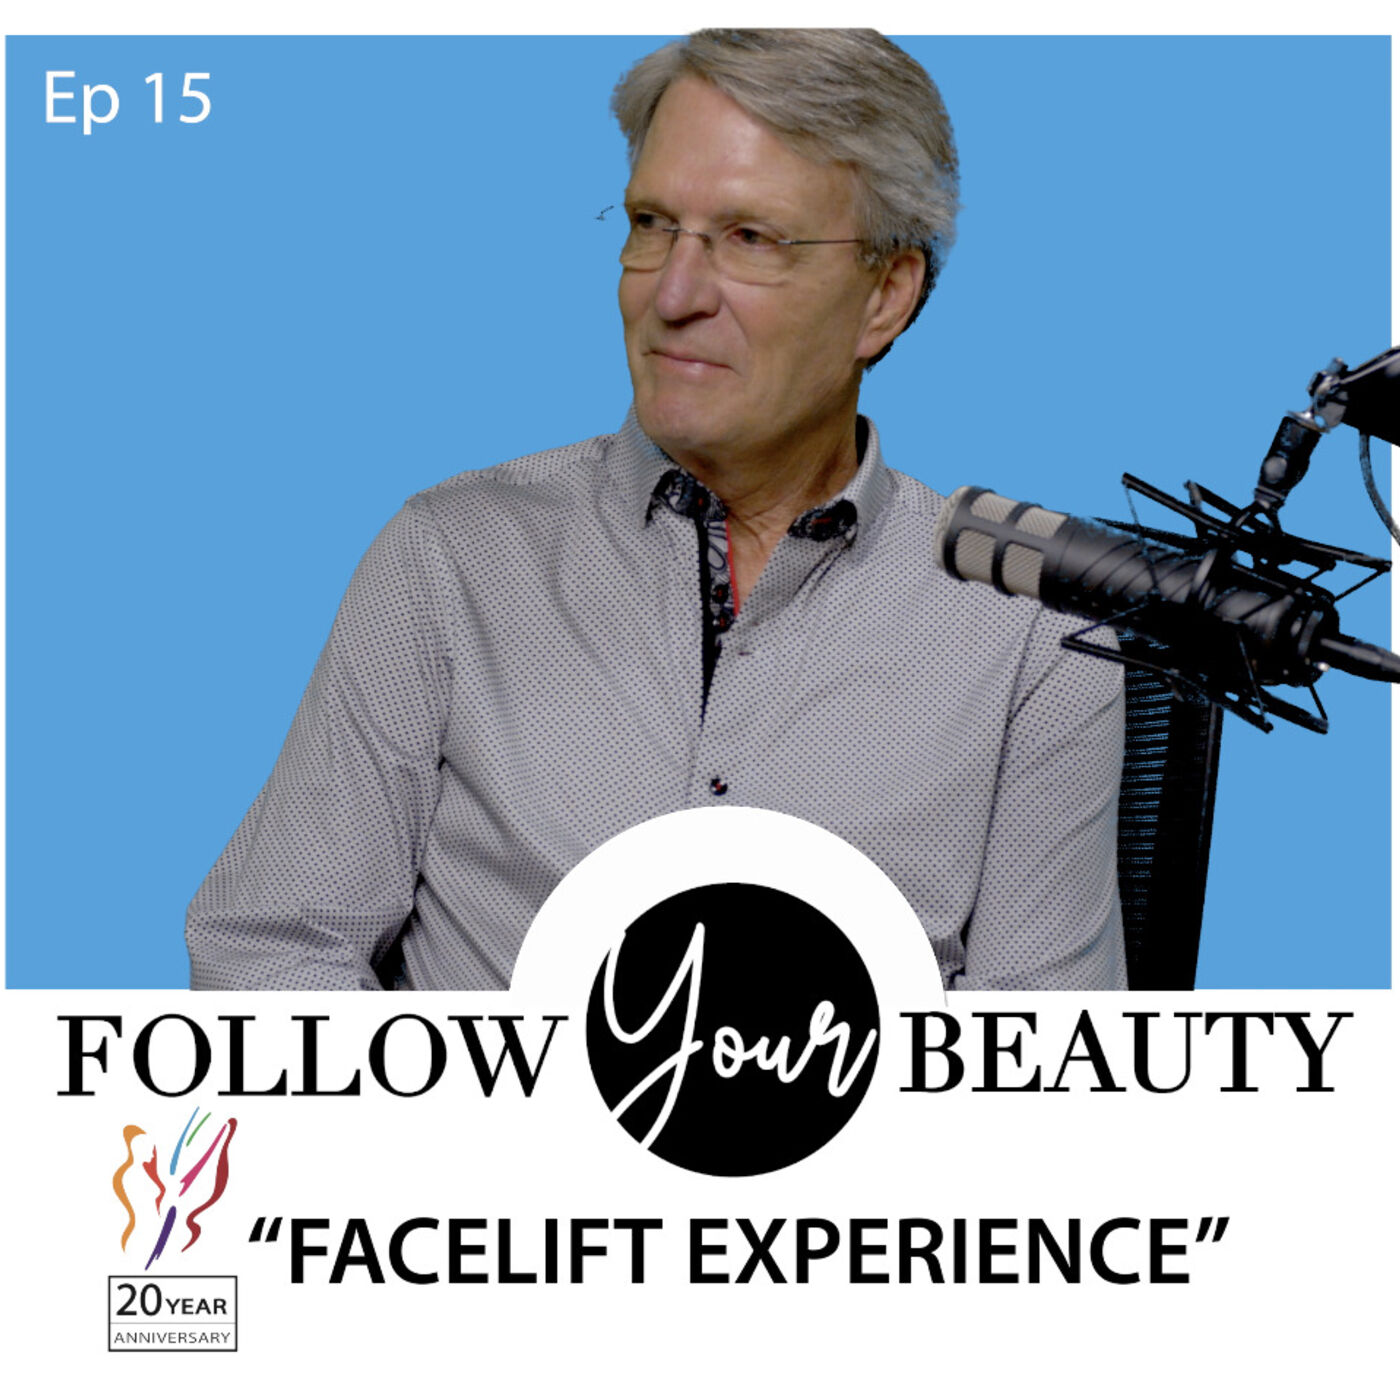 Follow Your Beauty - Jerry's Facelift Experience